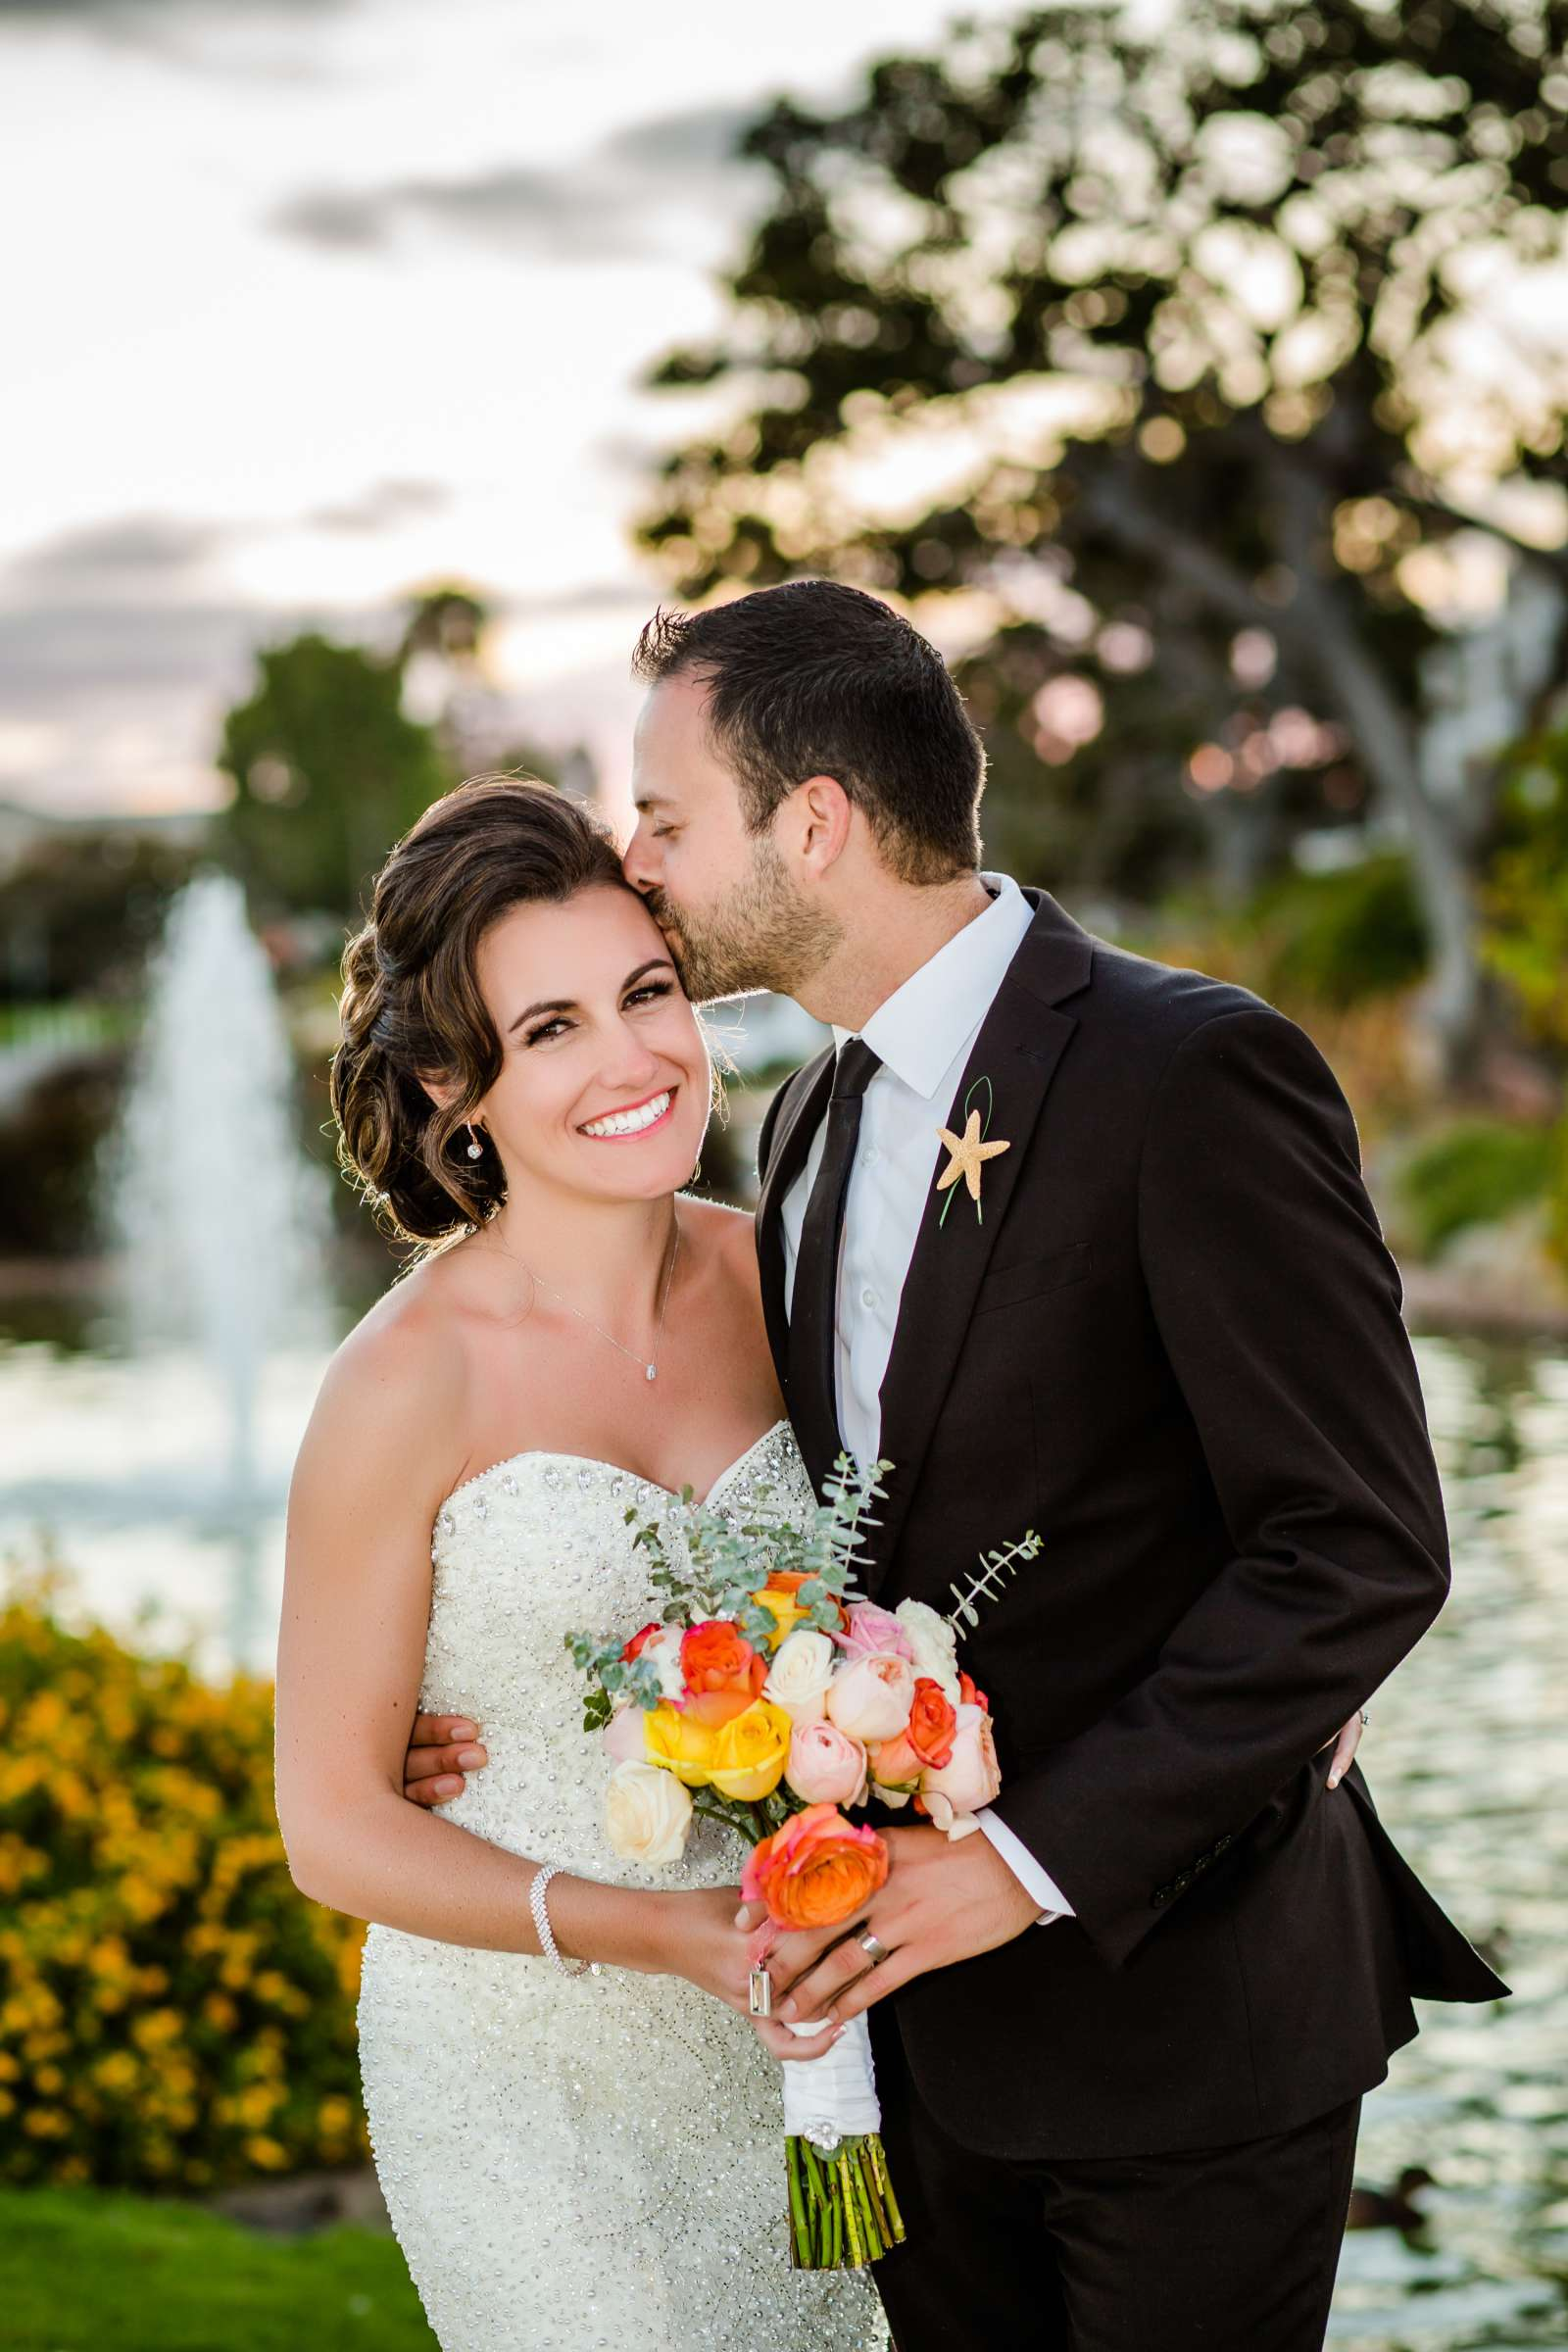 Coronado Island Marriott Resort & Spa Wedding, Julie and Christopher Wedding Photo #240174 by True Photography